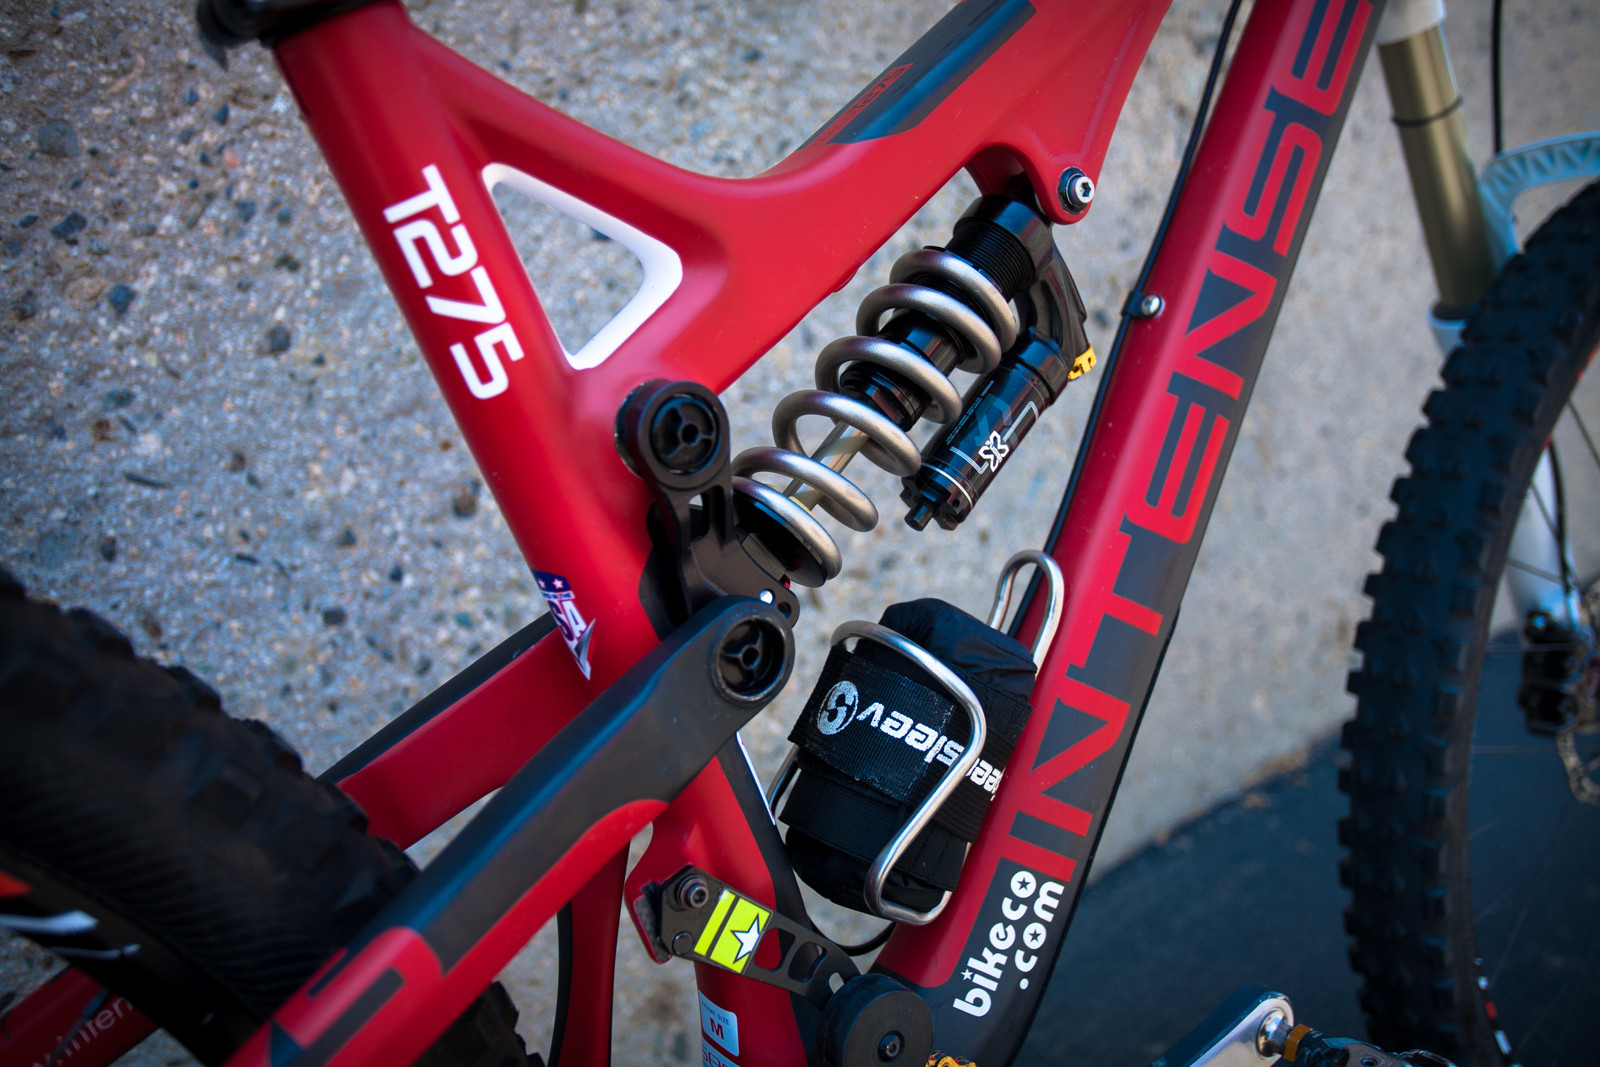 Brian Lopes' Intense Tracer T275 - Pro Bike Check: Brian Lopes' Intense Tracer T275 - Mountain Biking Pictures - Vital MTB